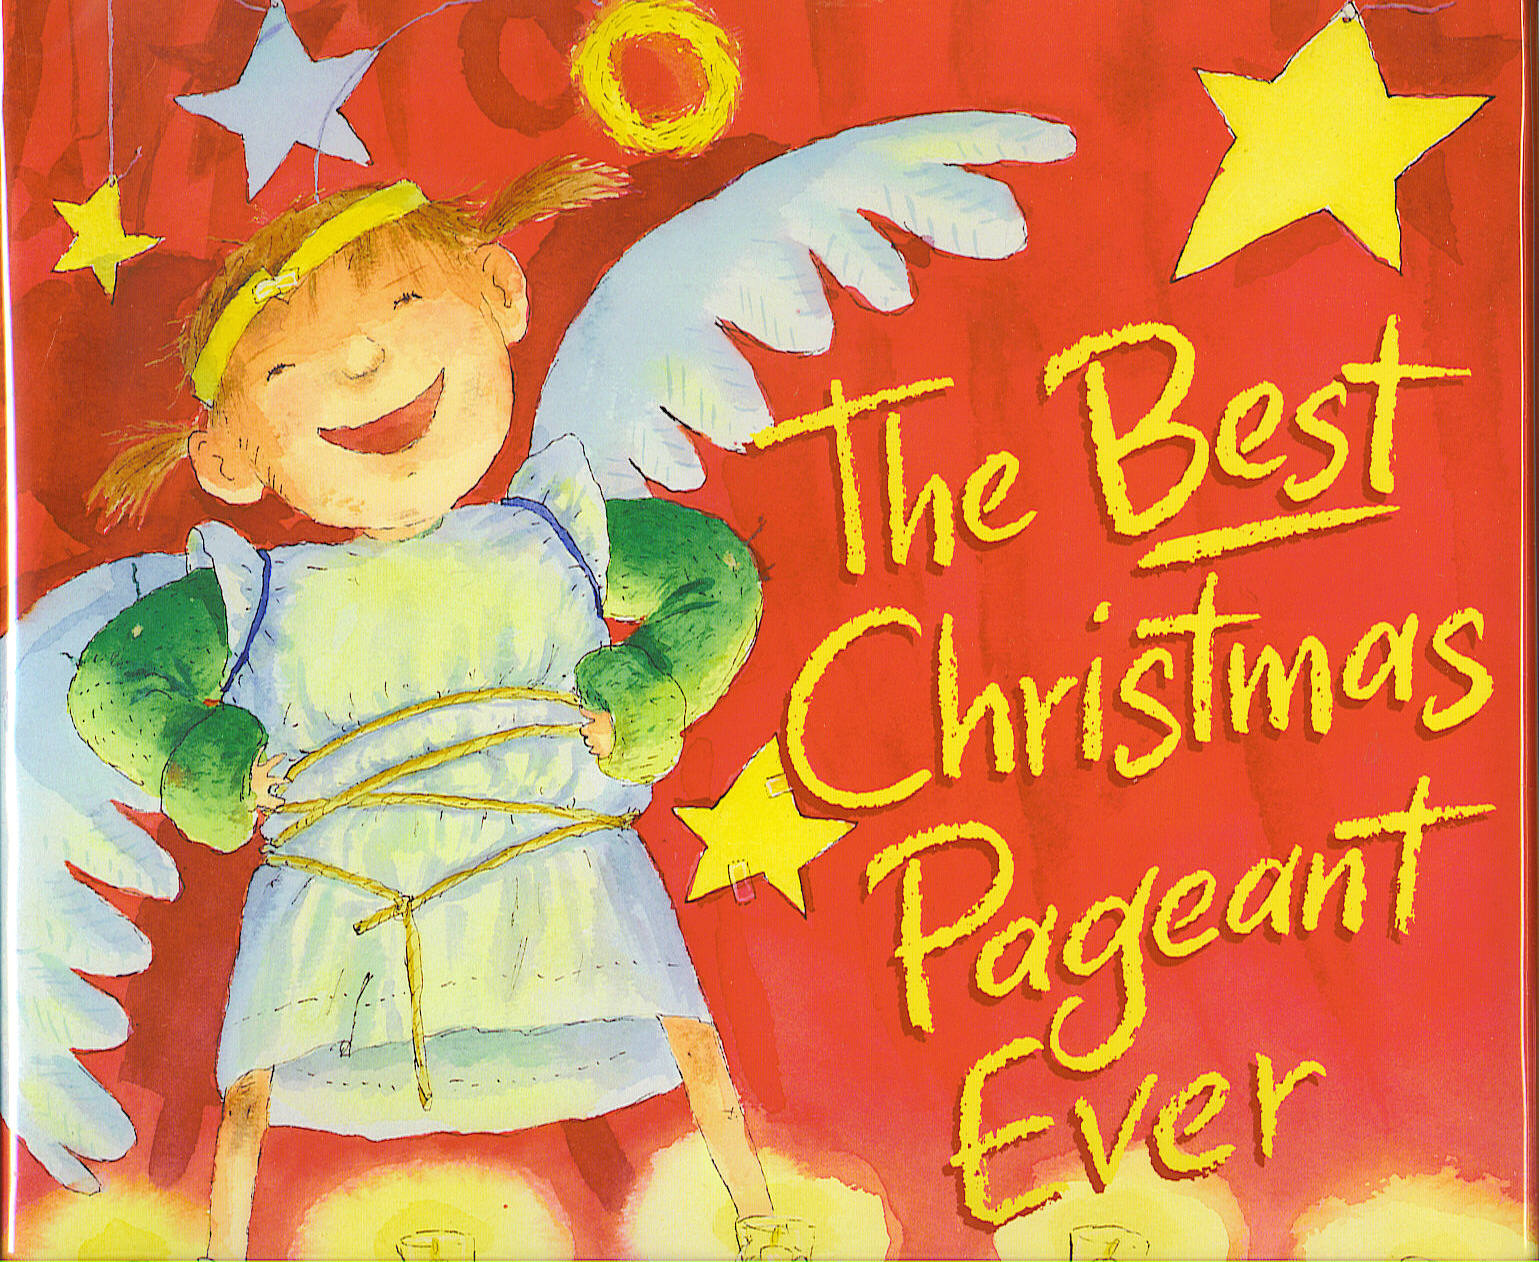 Mini Book Bytes: Book Review: The Best Christmas Pageant